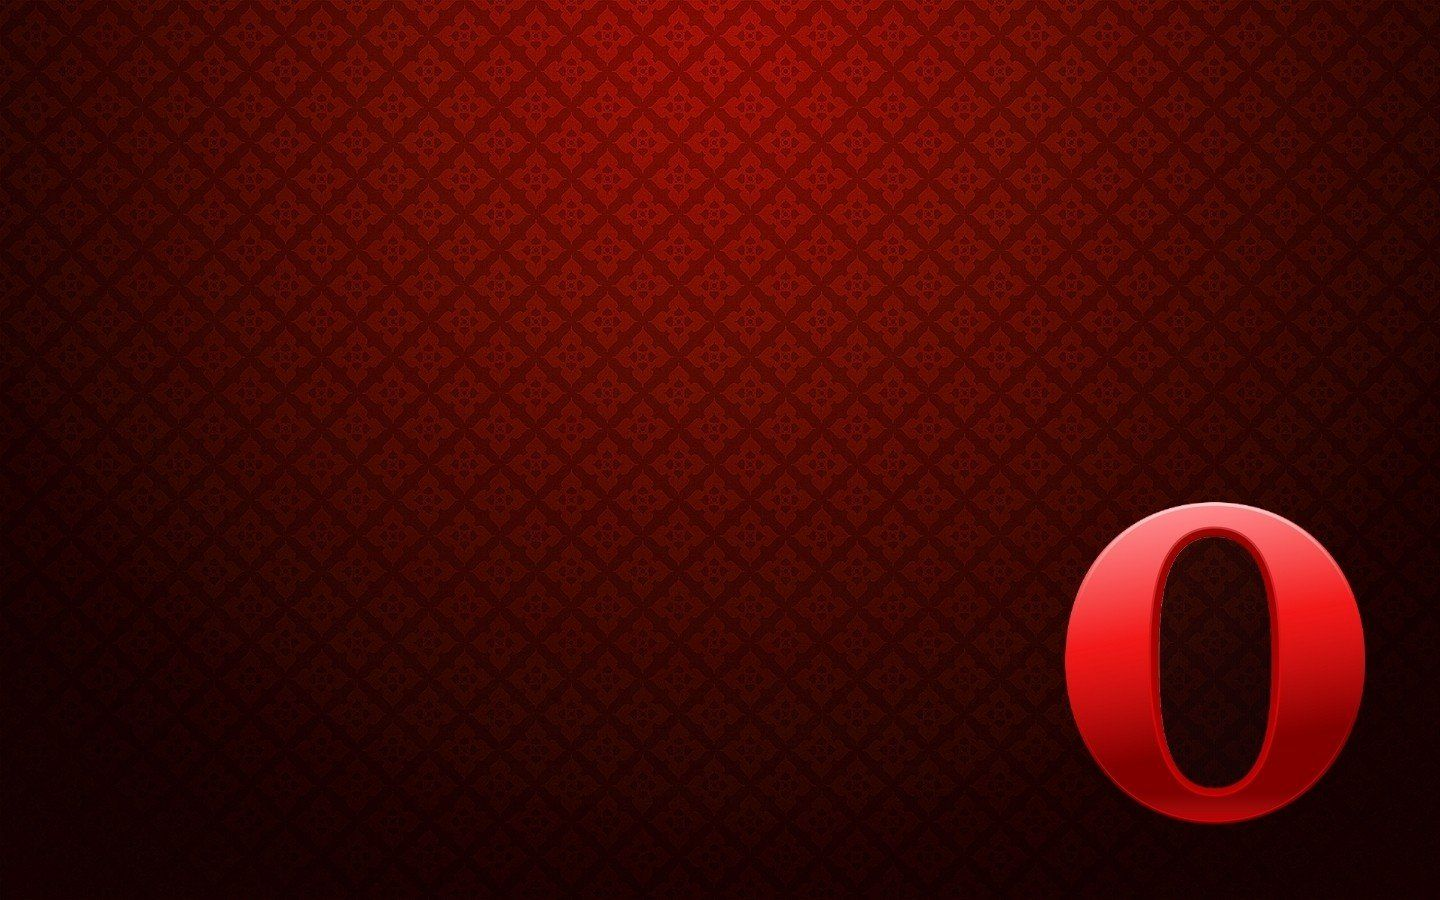 1440x900 2982707 browser opera browser wallpaper and background ...